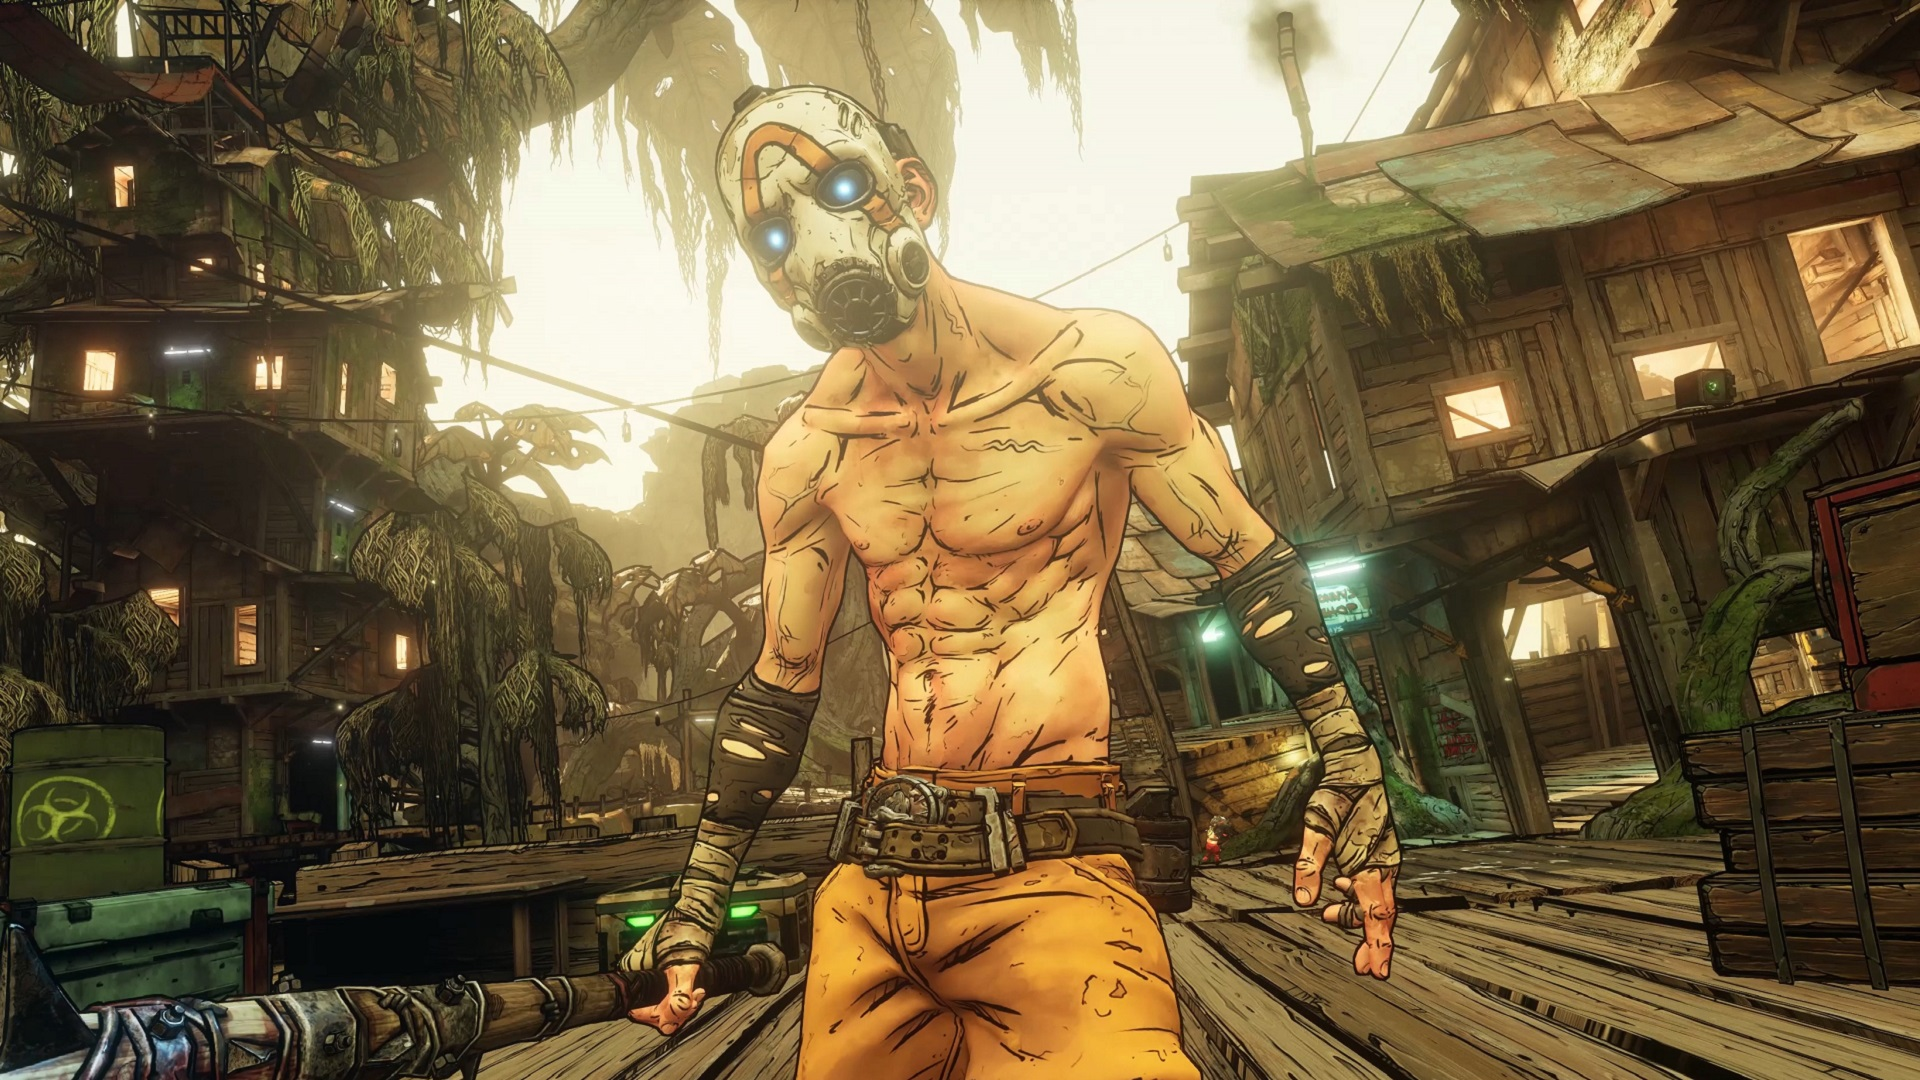 Borderlands 3 ECHOcast: how to install and use the Twitch extension